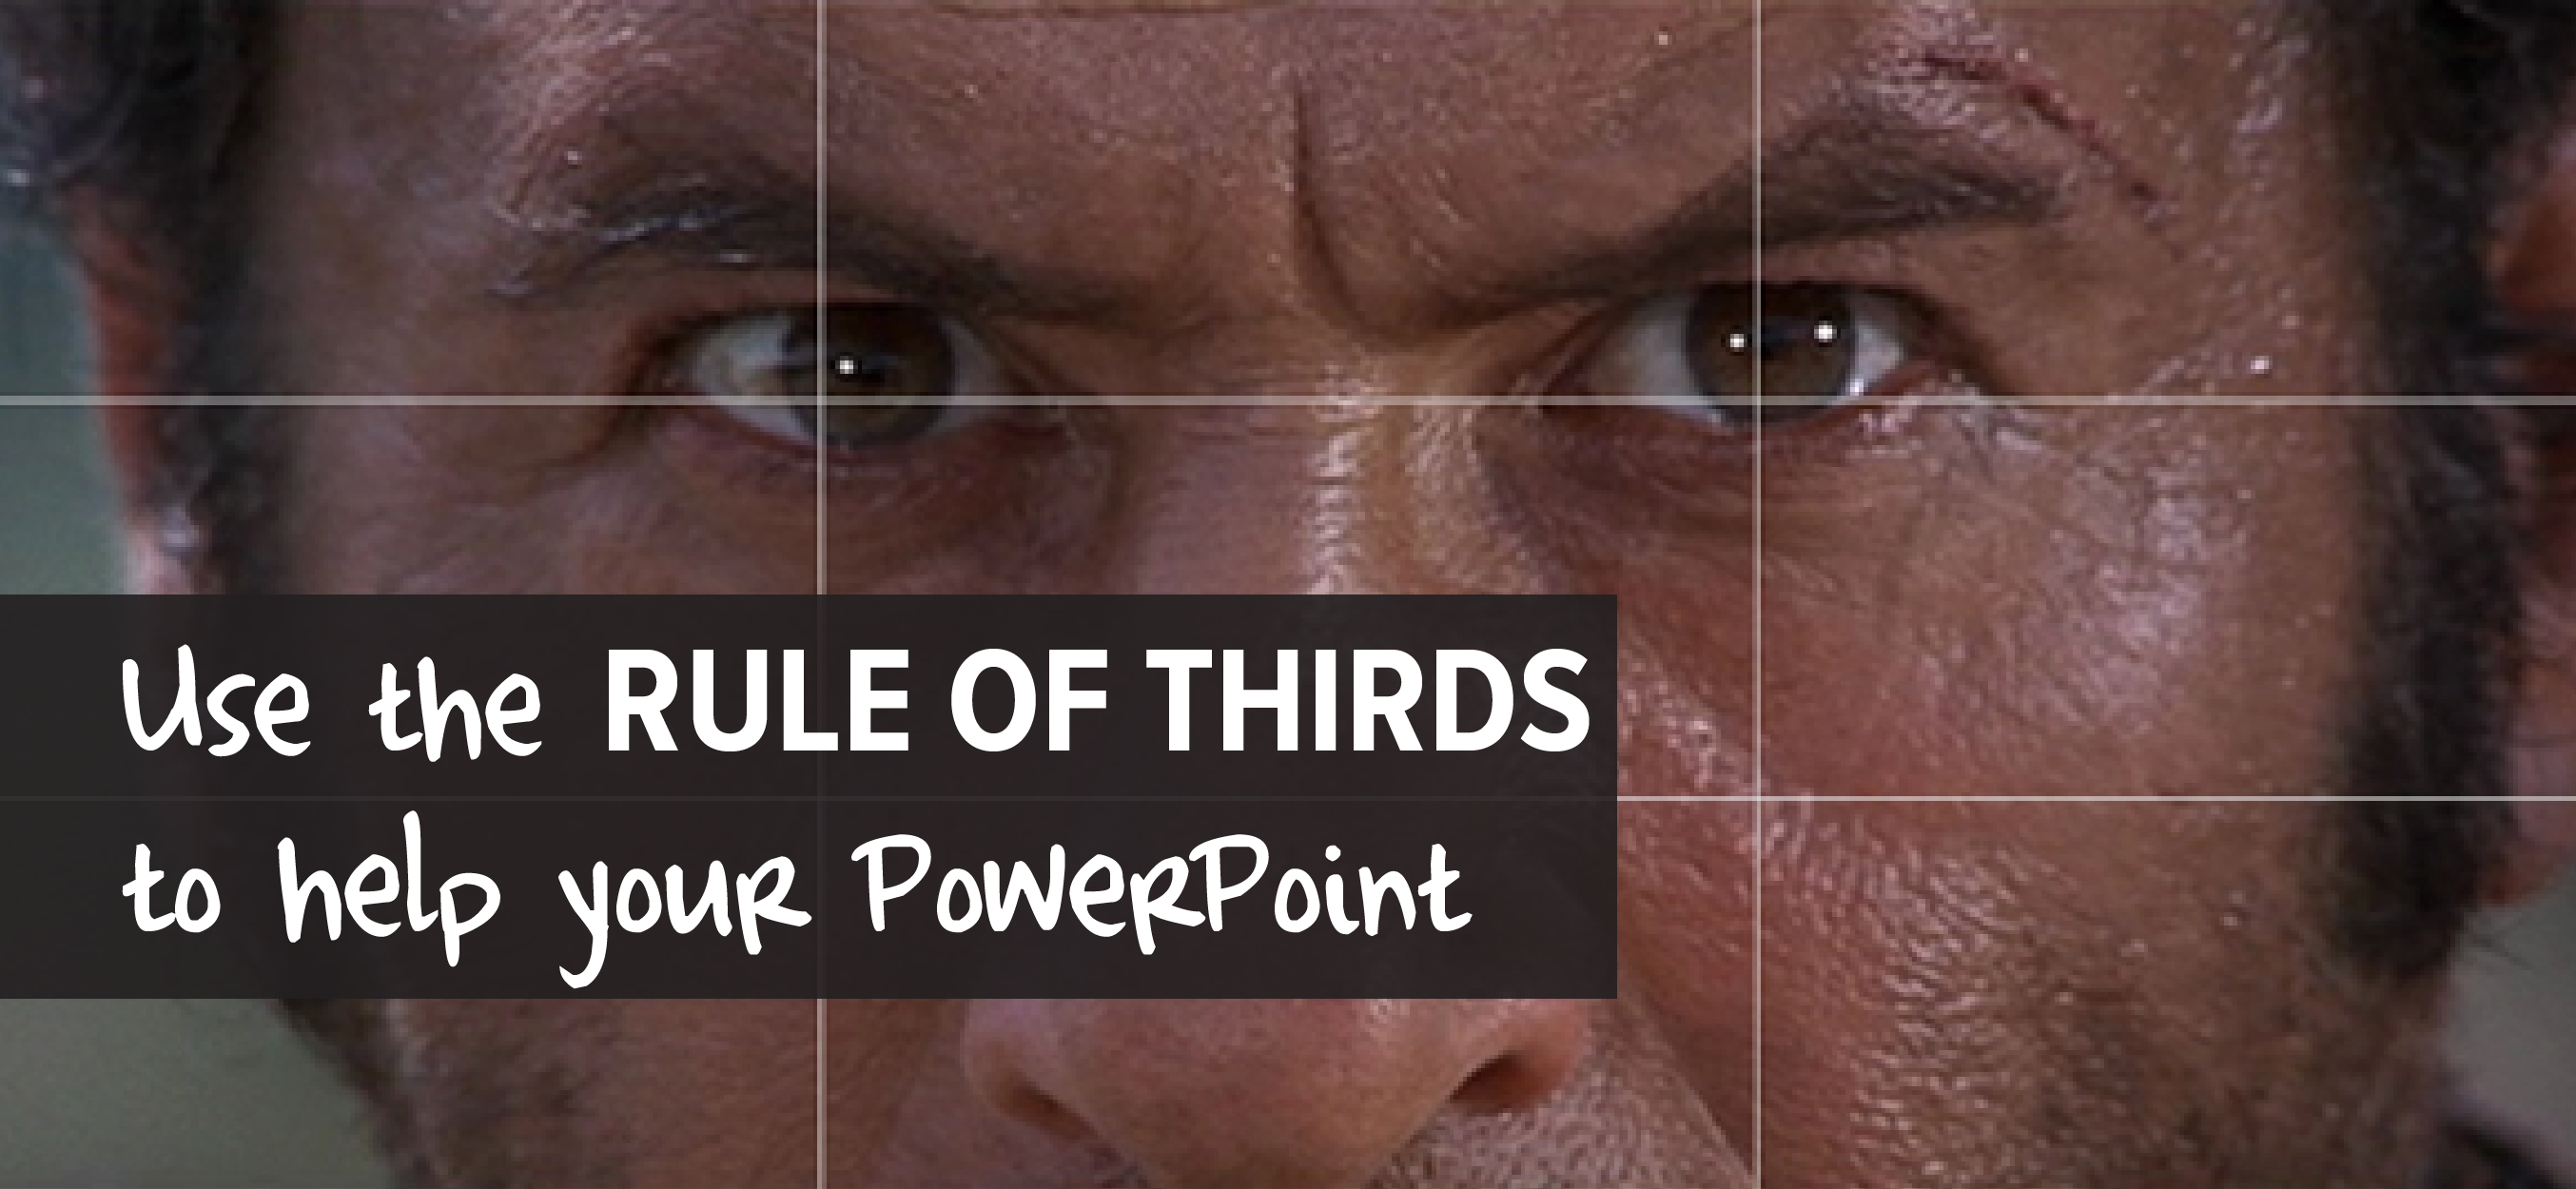 use the rule of thirds to help your powerpoint make a powerful point